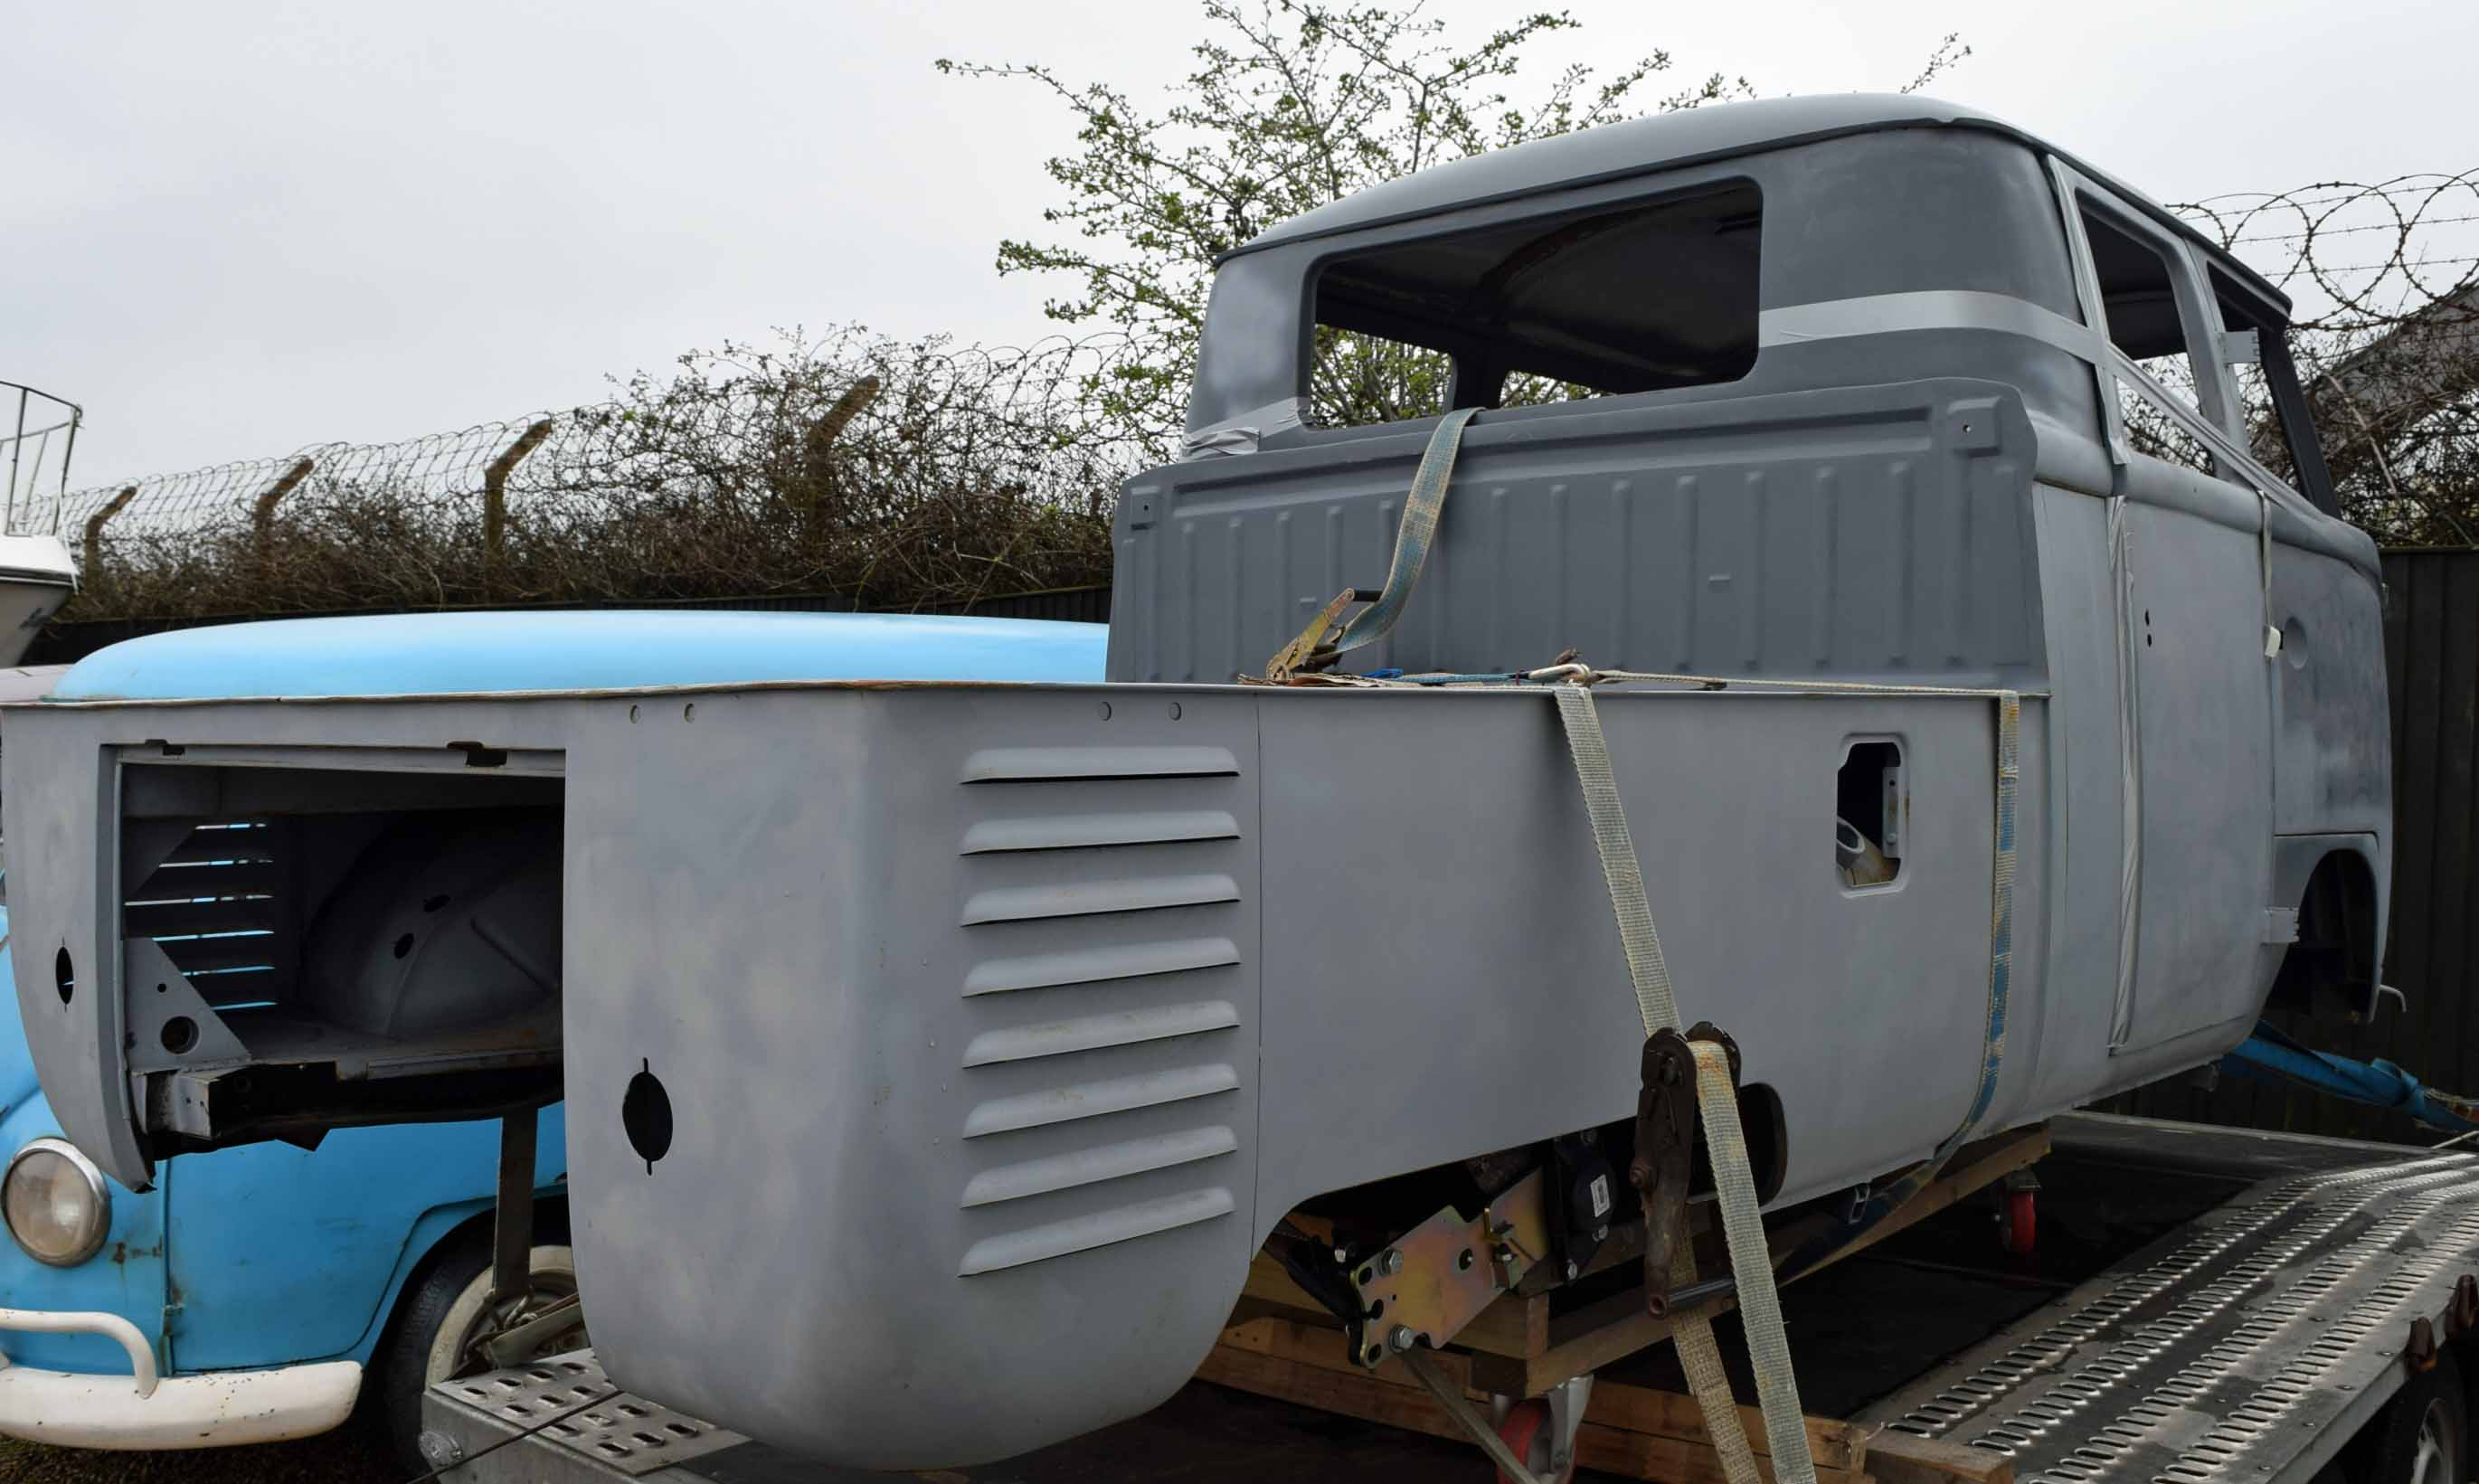 Lot 35 - 1966 VOLKSWAGEN Kombi Split Screen Crew Cab Pick-Up, Body Shell and Suspension Only (Brazilian